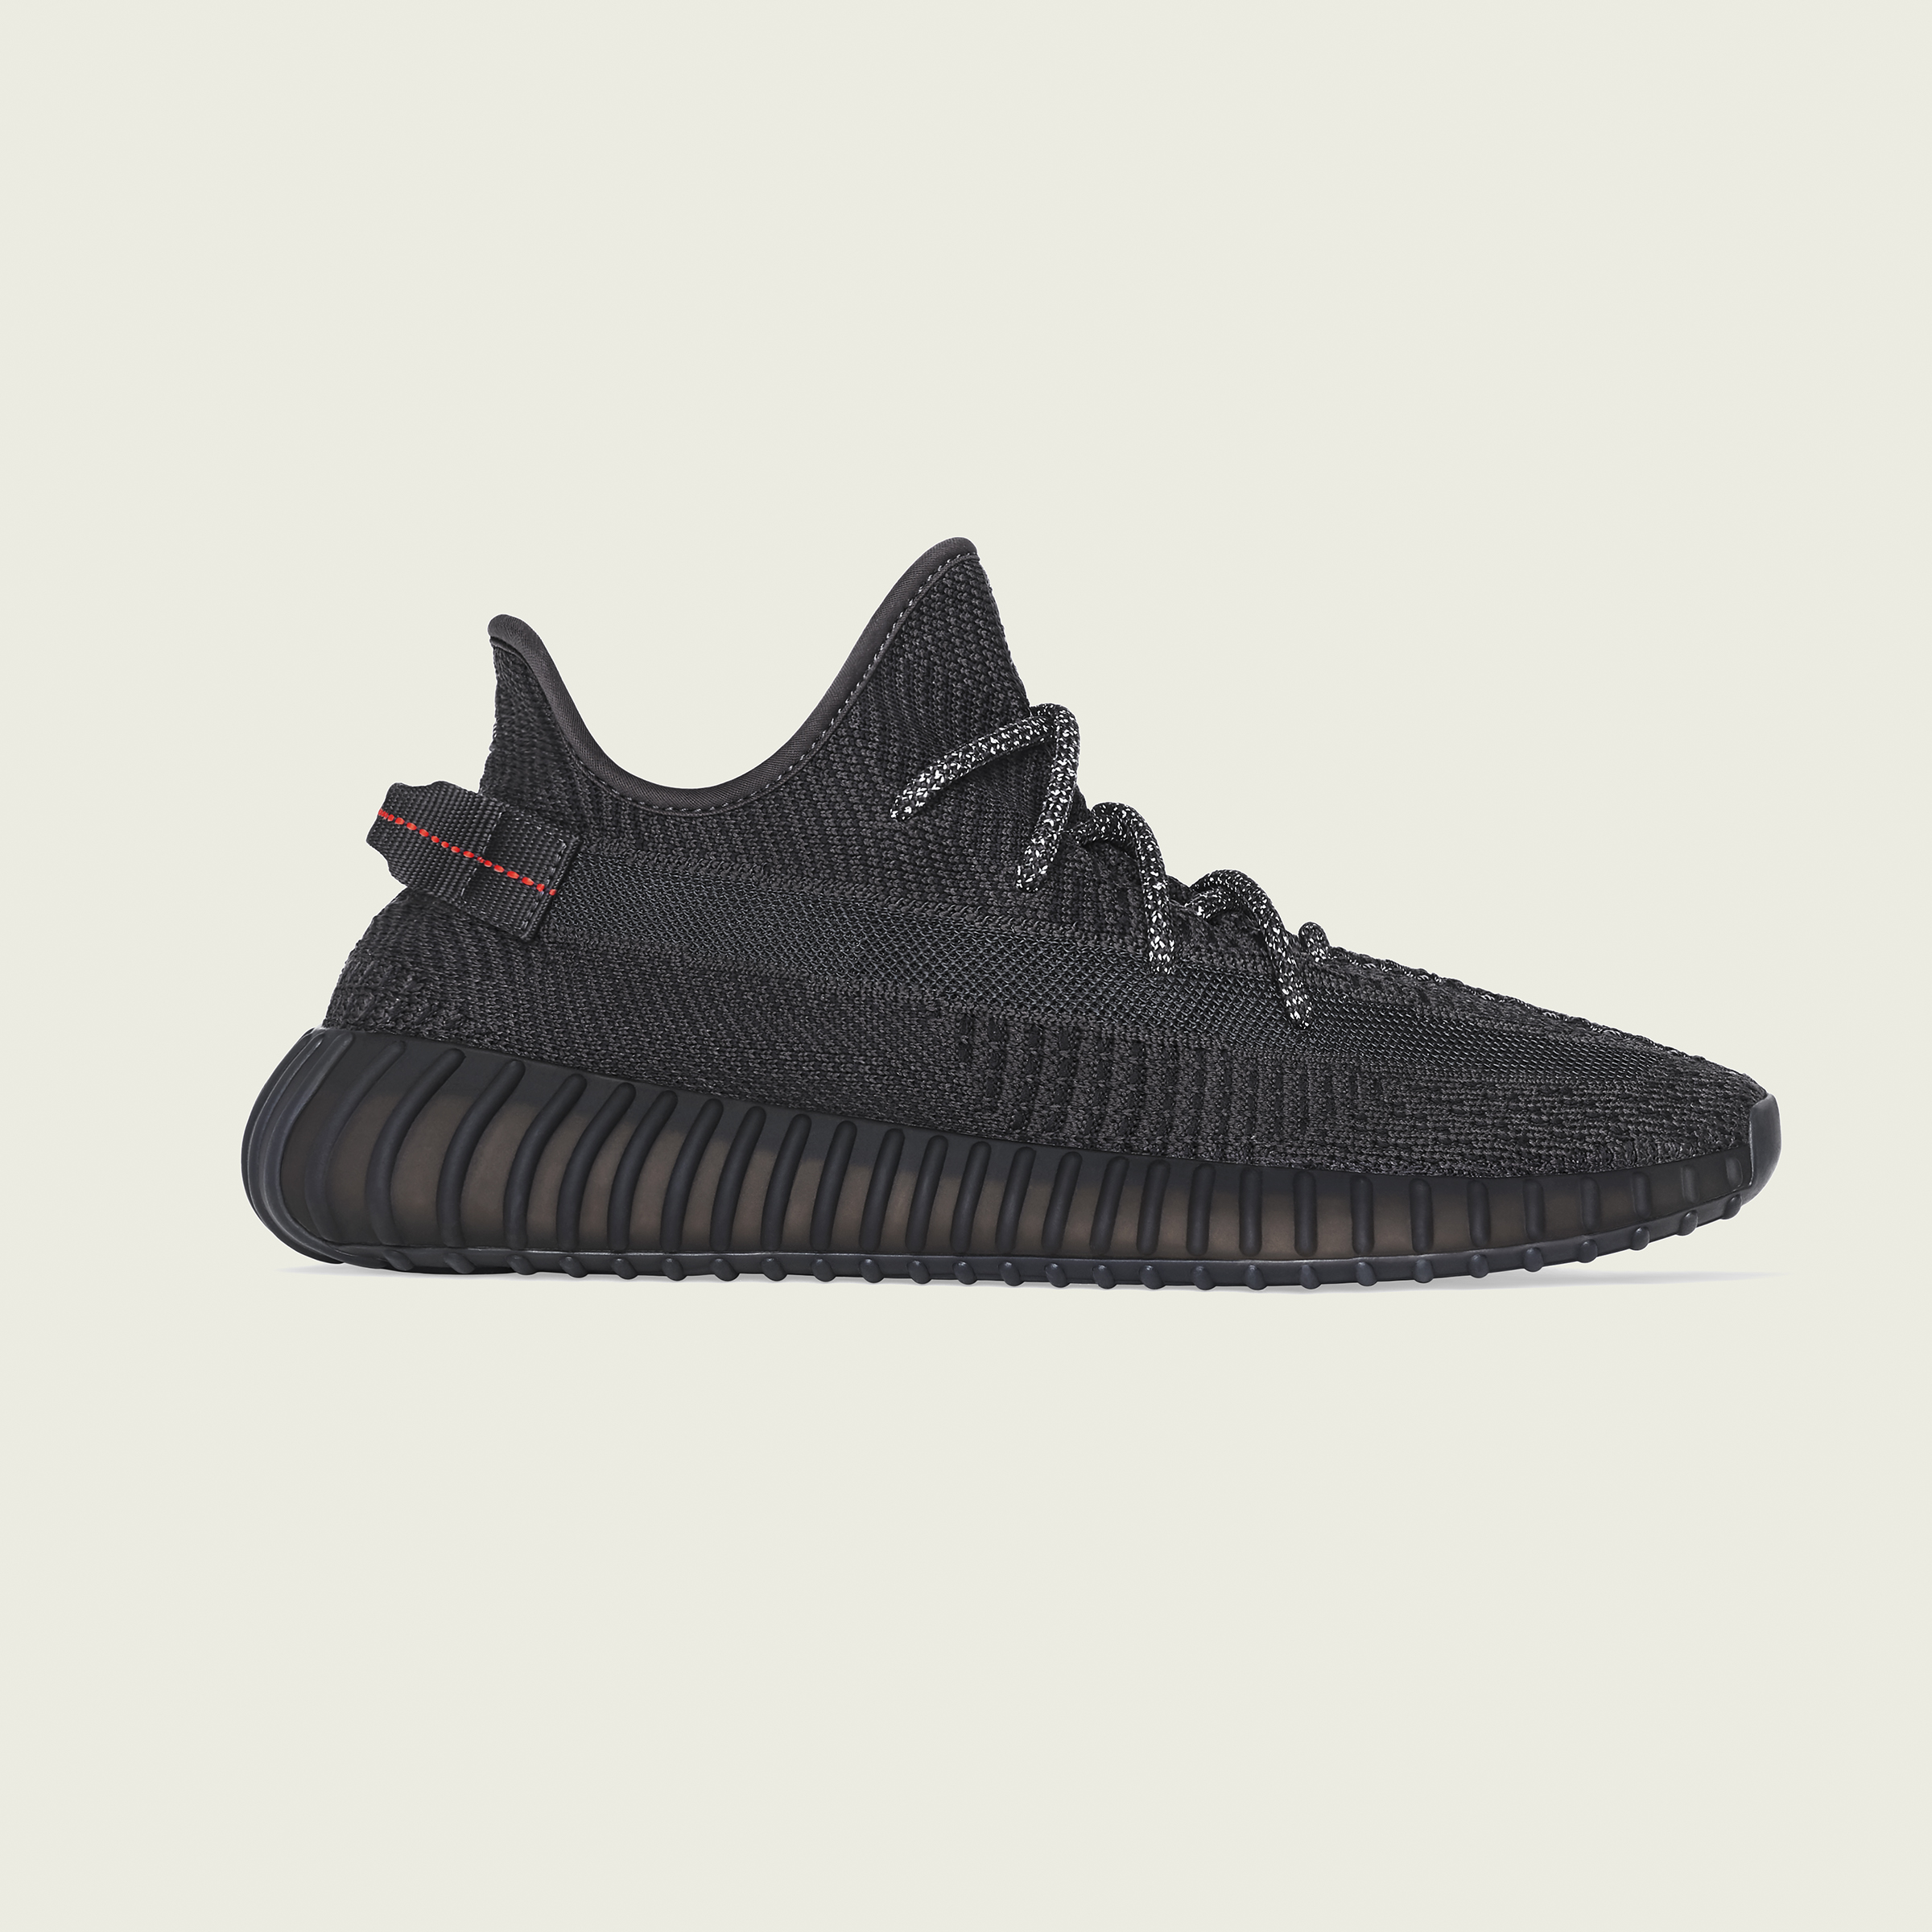 YEEZY Boost 350 v2 'Black' is Back